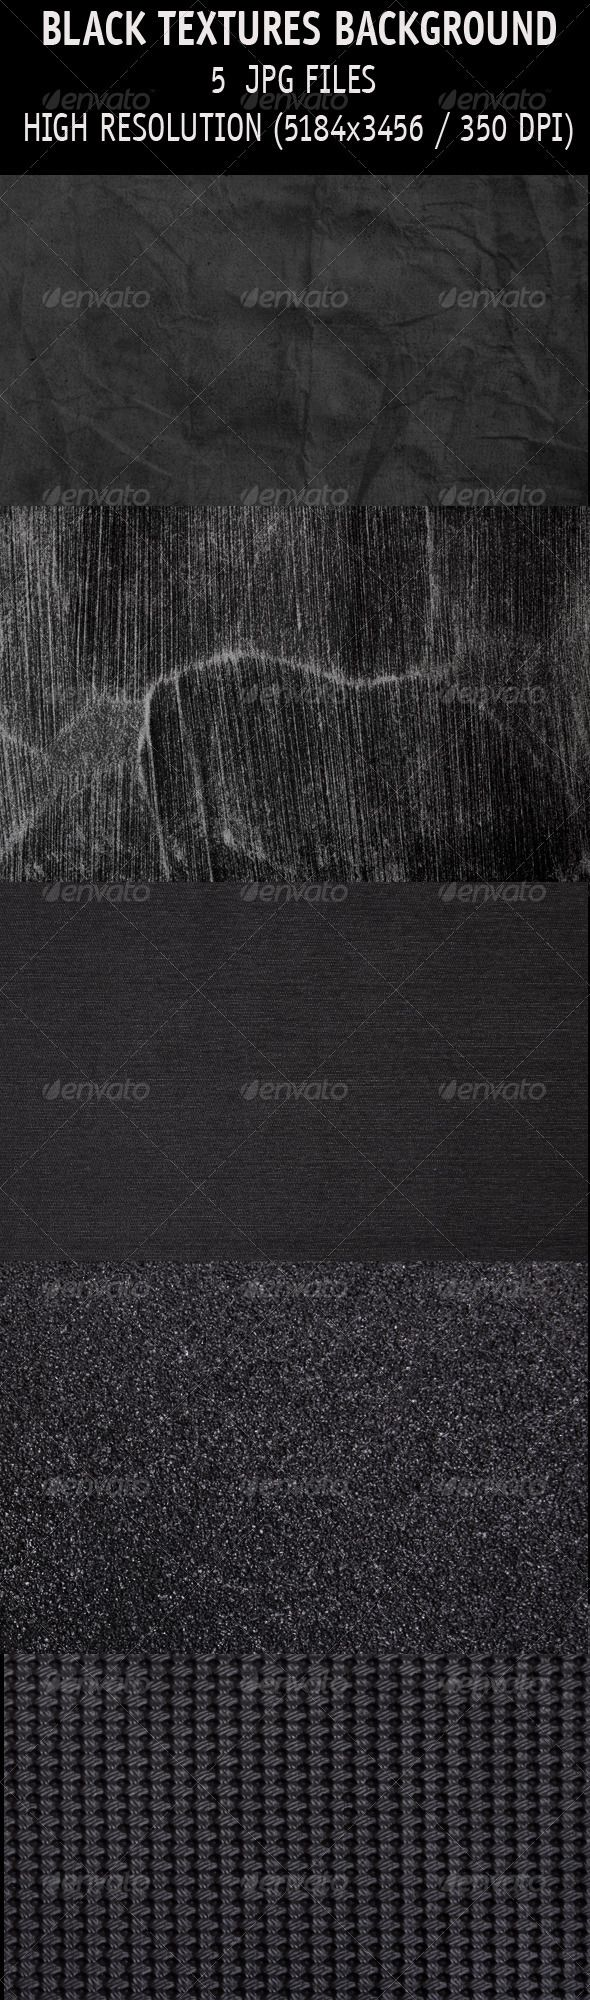 Black textures background — Photoshop PSD #bass #old • Available here → https://graphicriver.net/item/black-textures-background/309254?ref=pxcr